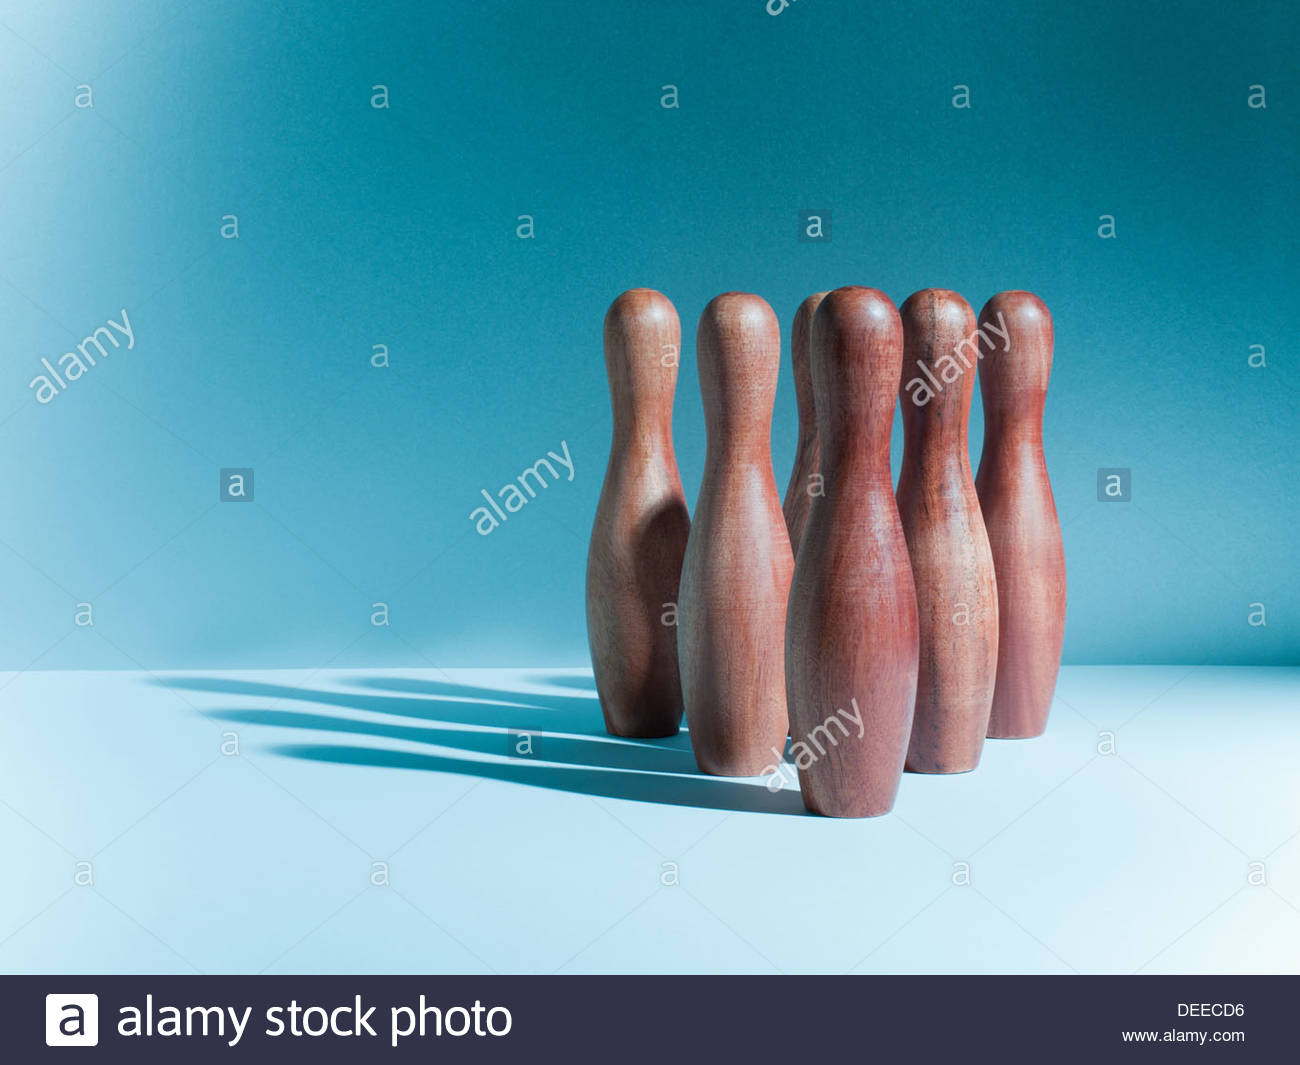 Bowling and skittles - Stock Image